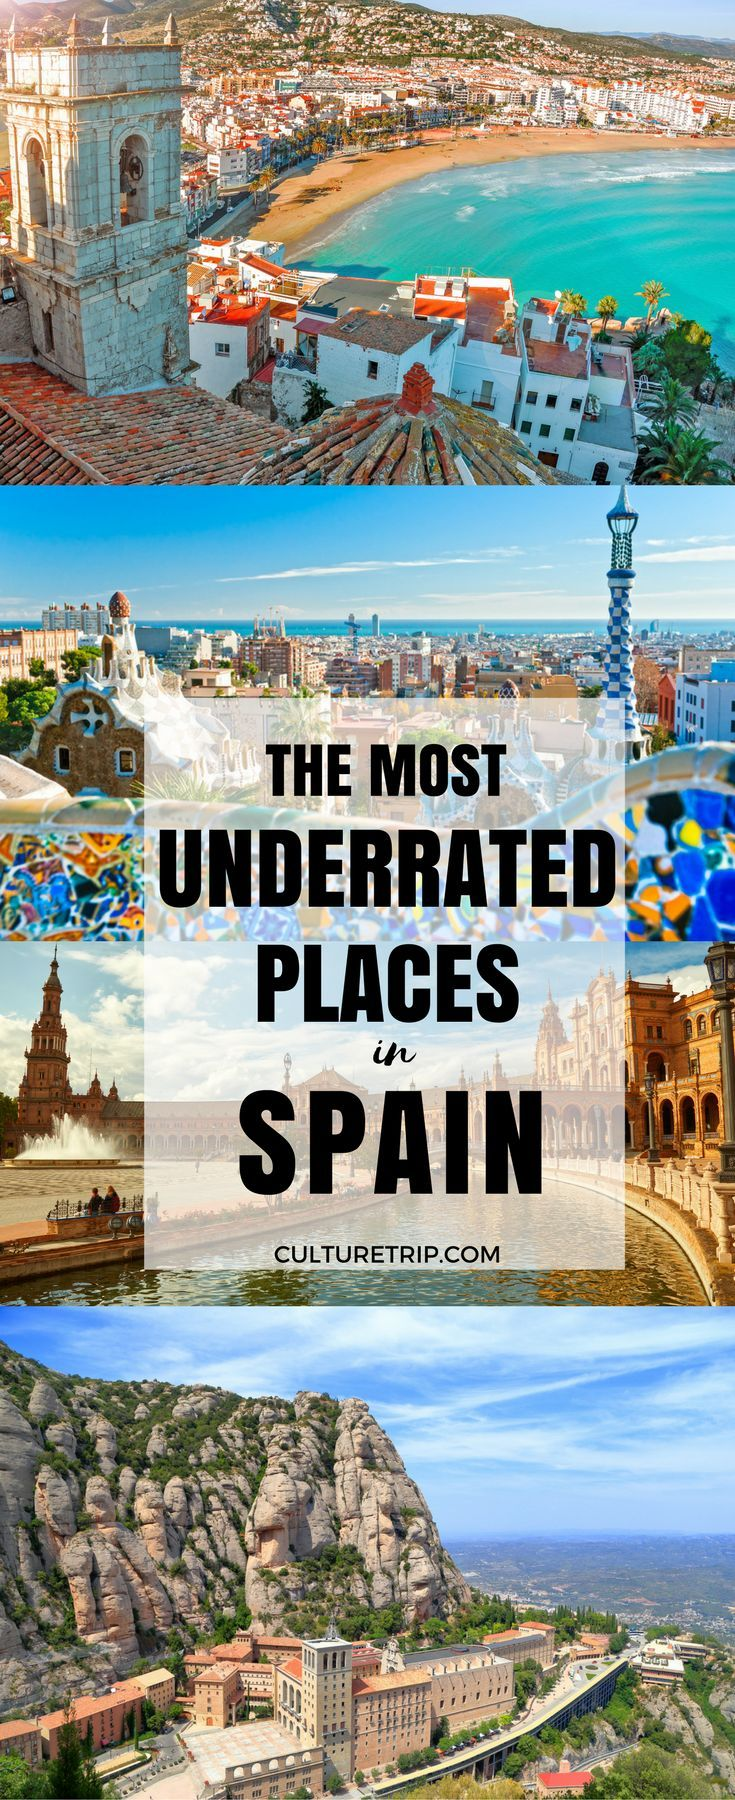 The Most Underrated Places To Visit In Spain In 2017